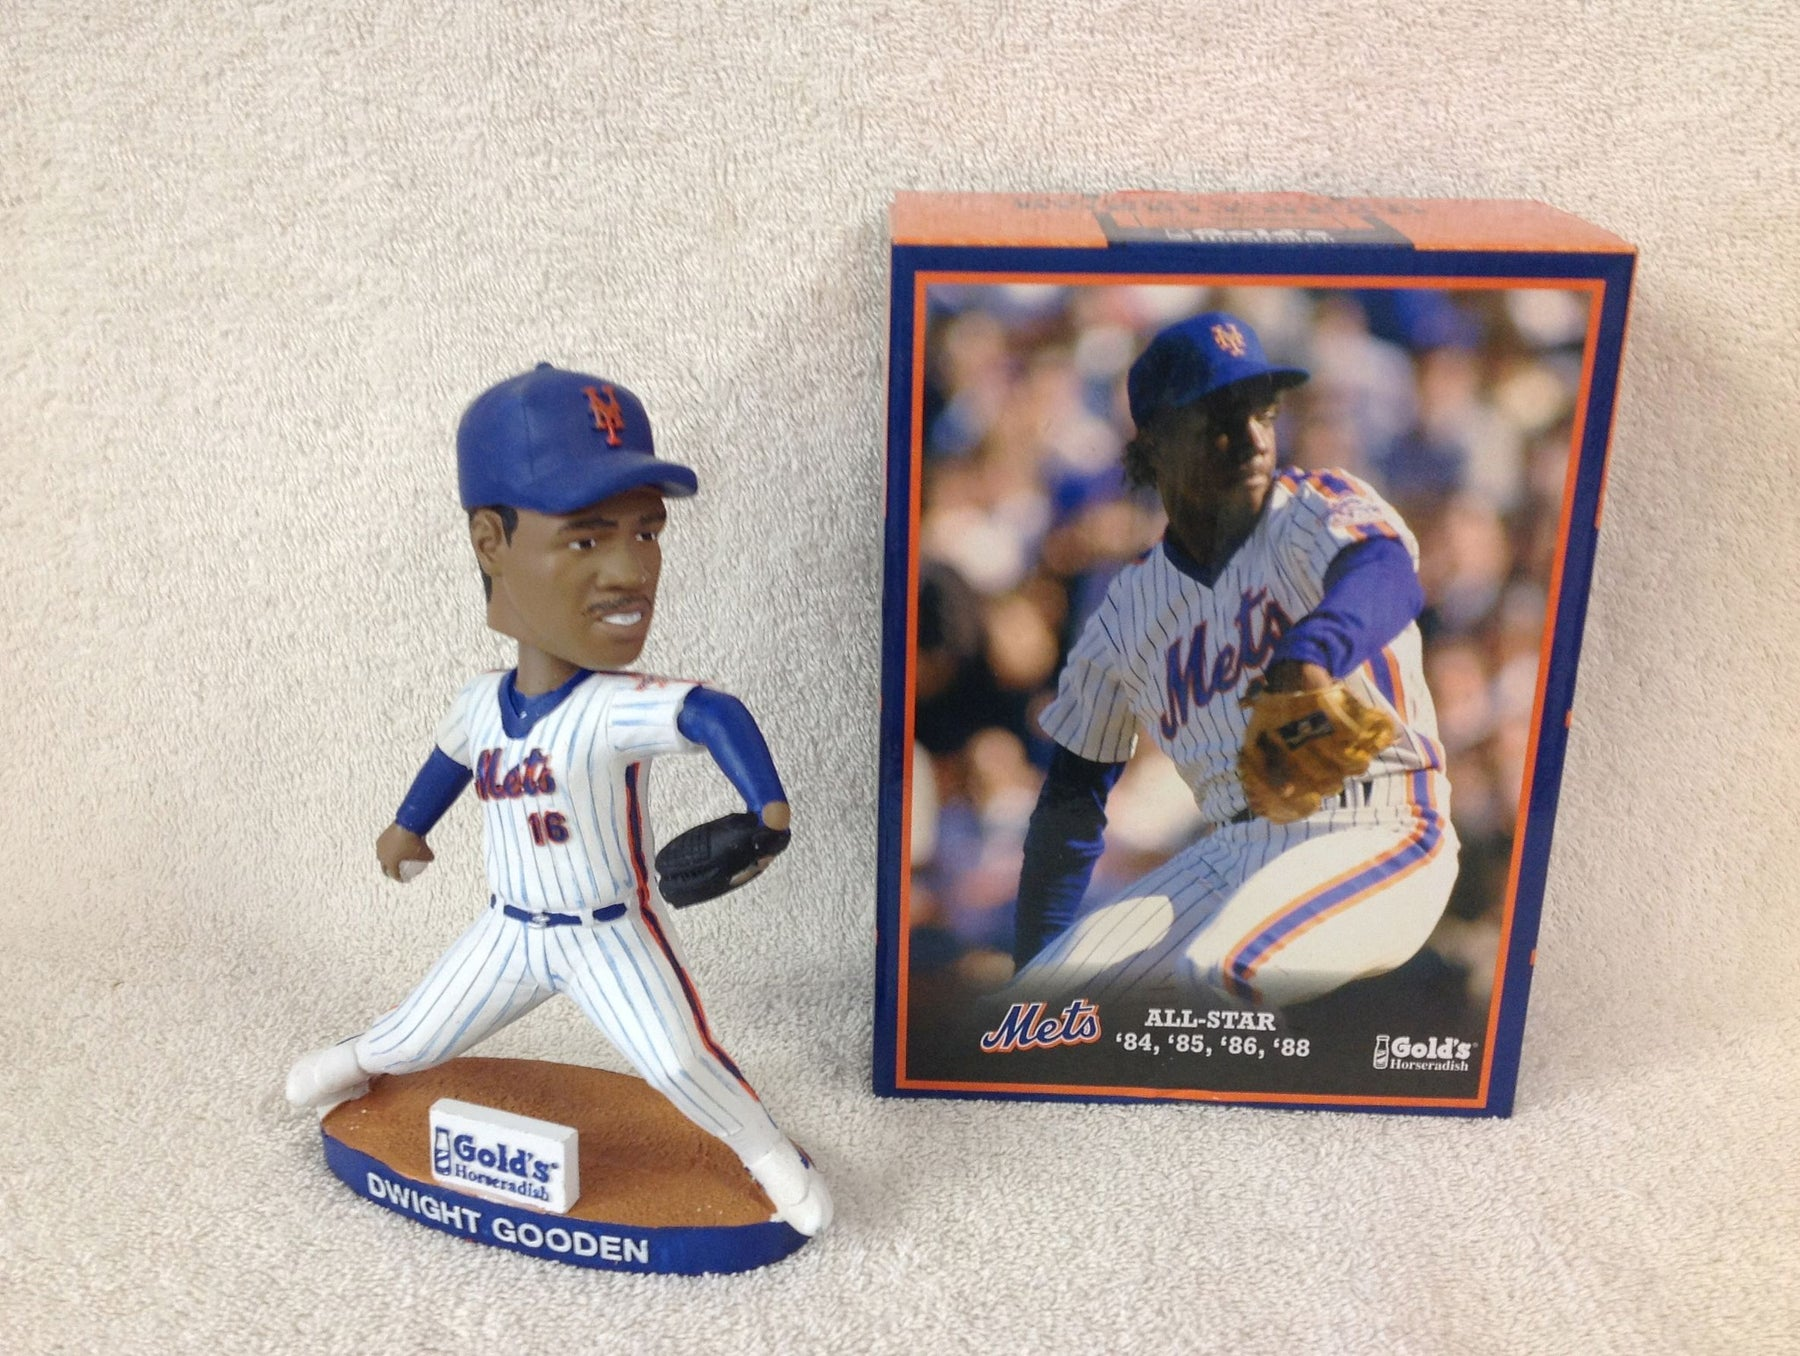 Dwight Gooden Bobblehead - BobblesGalore